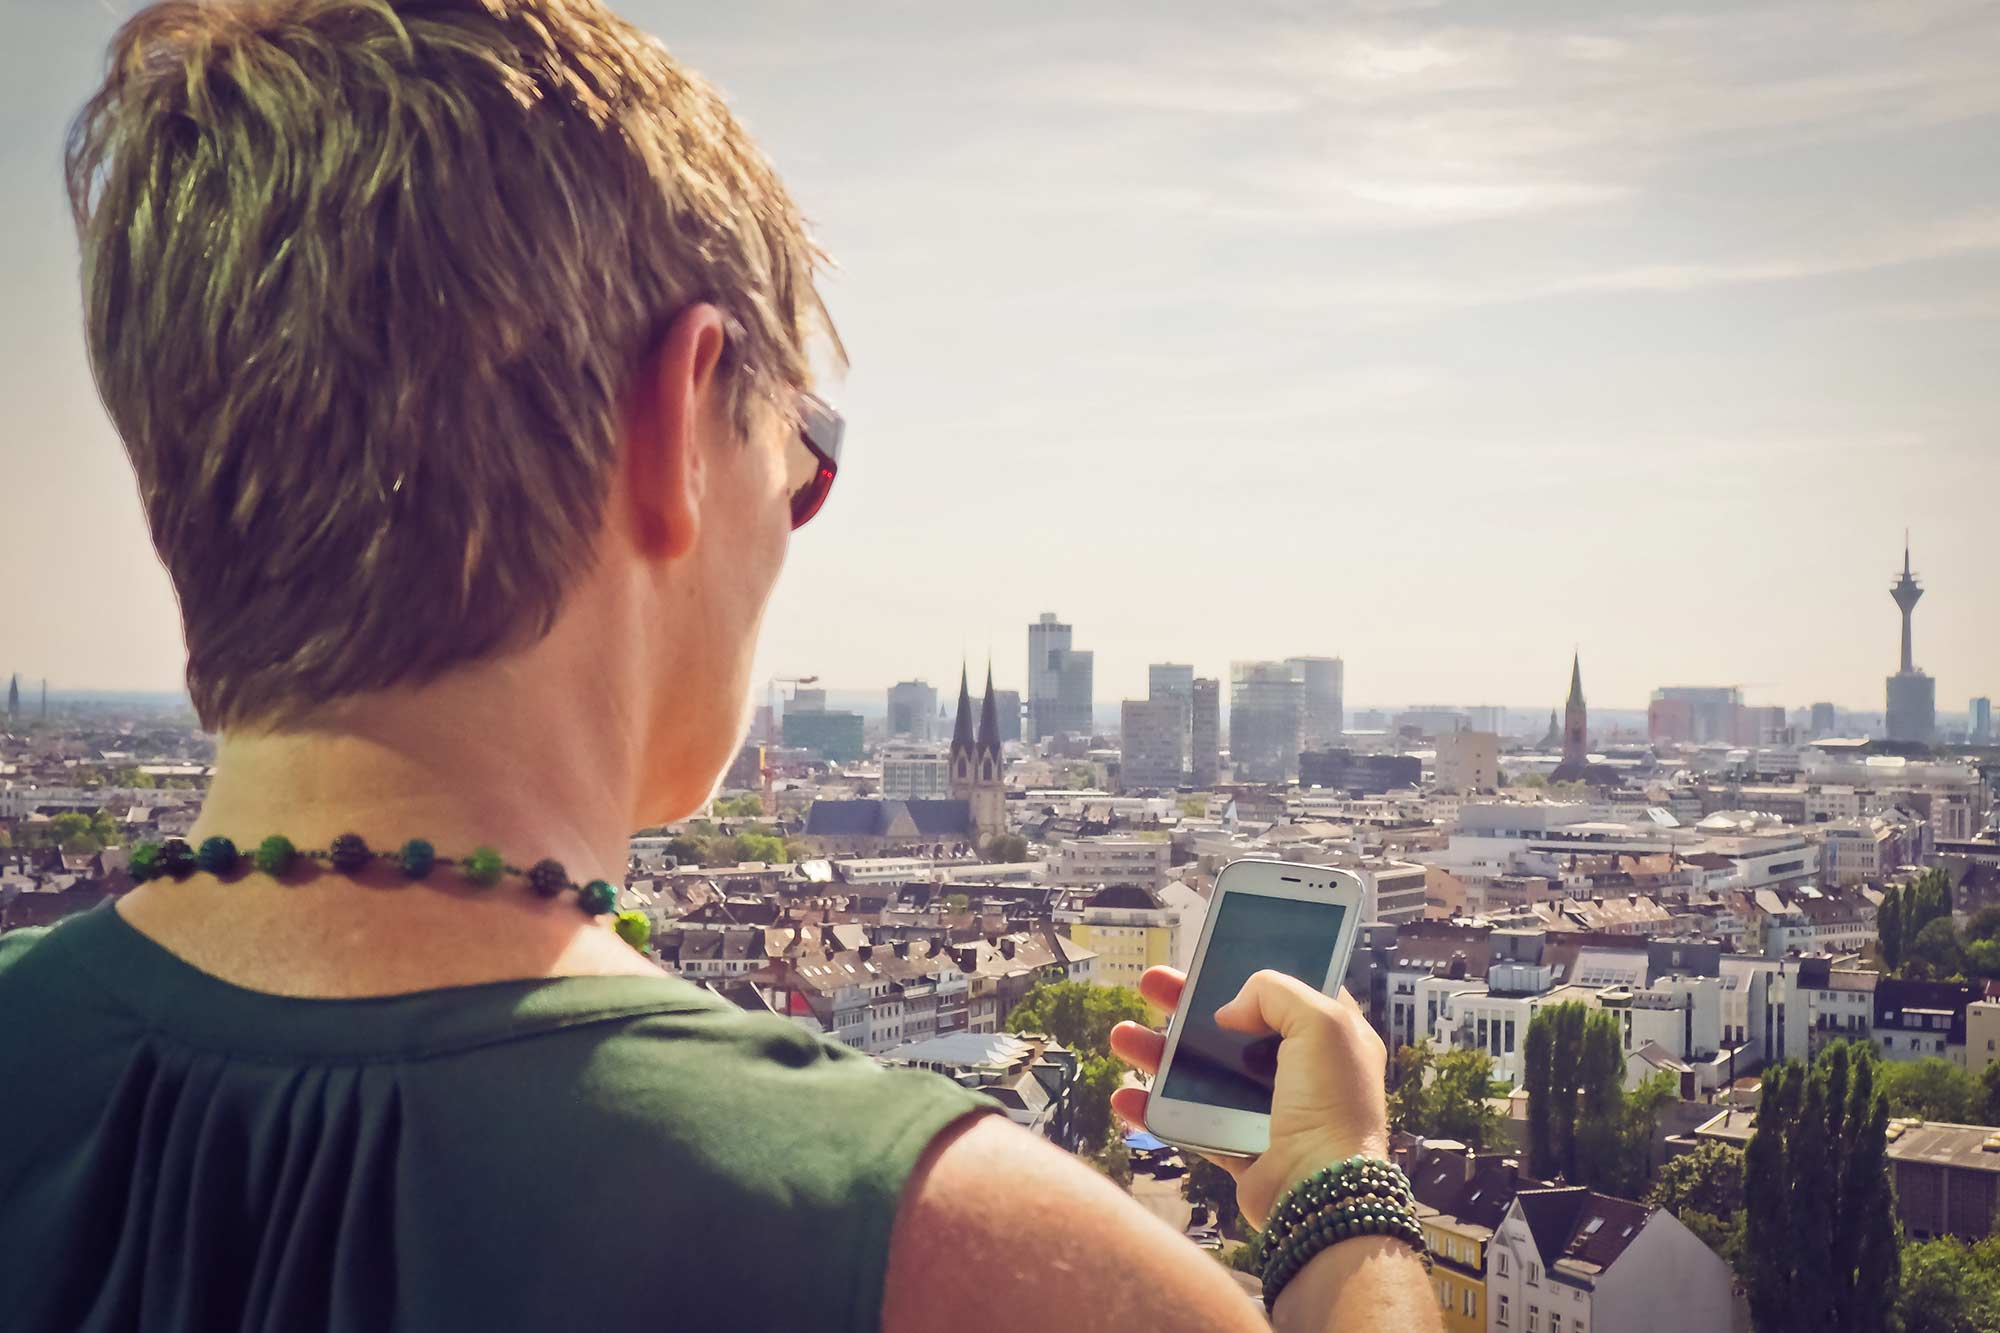 Translator Claudia Dalberg on the phone with a customer and a view of Dusseldorf